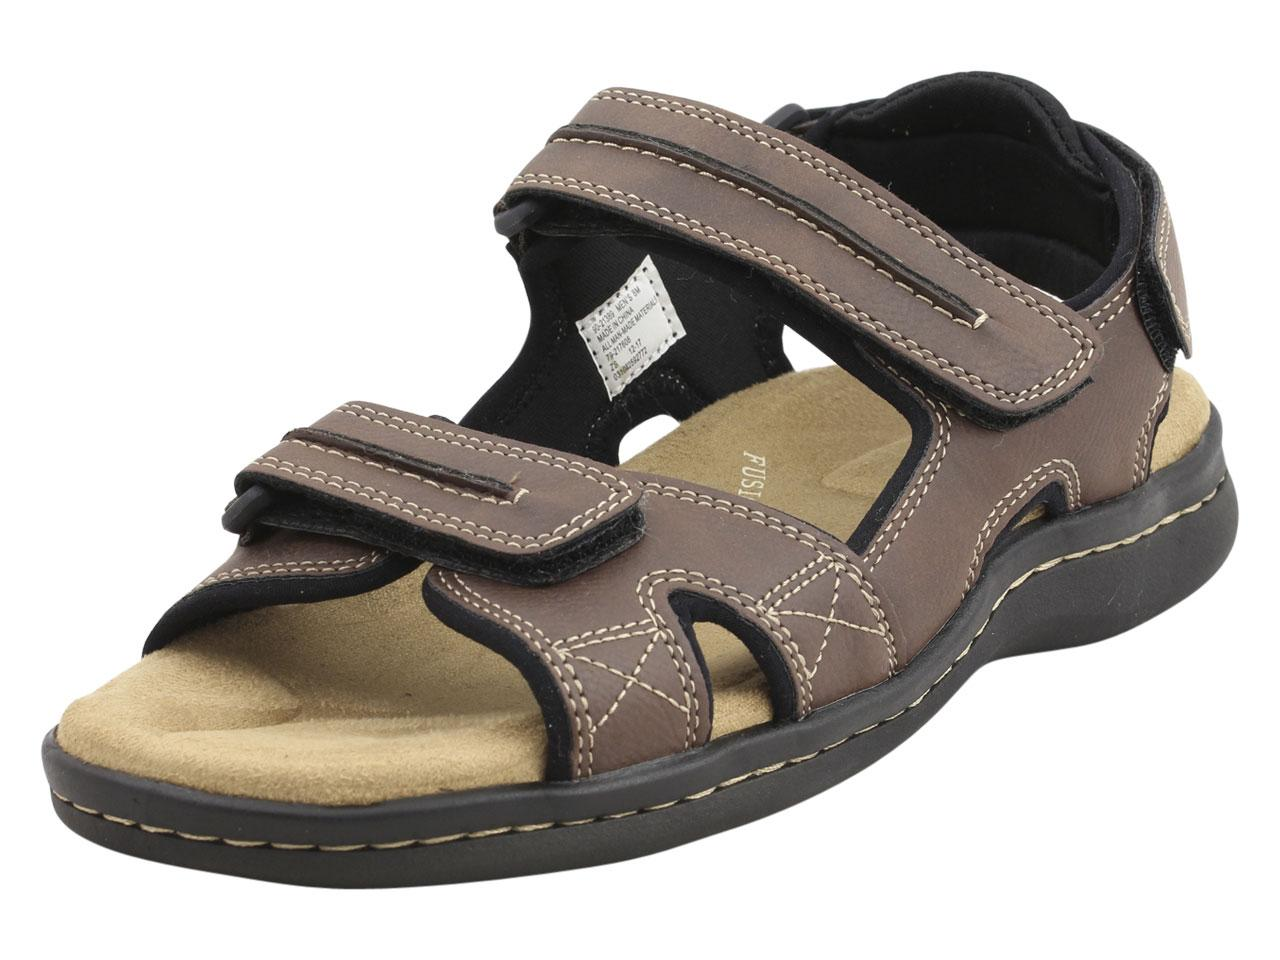 Image of Dockers Men's Newpage Memory Foam Sandals Shoes - Brown - 8 D(M) US